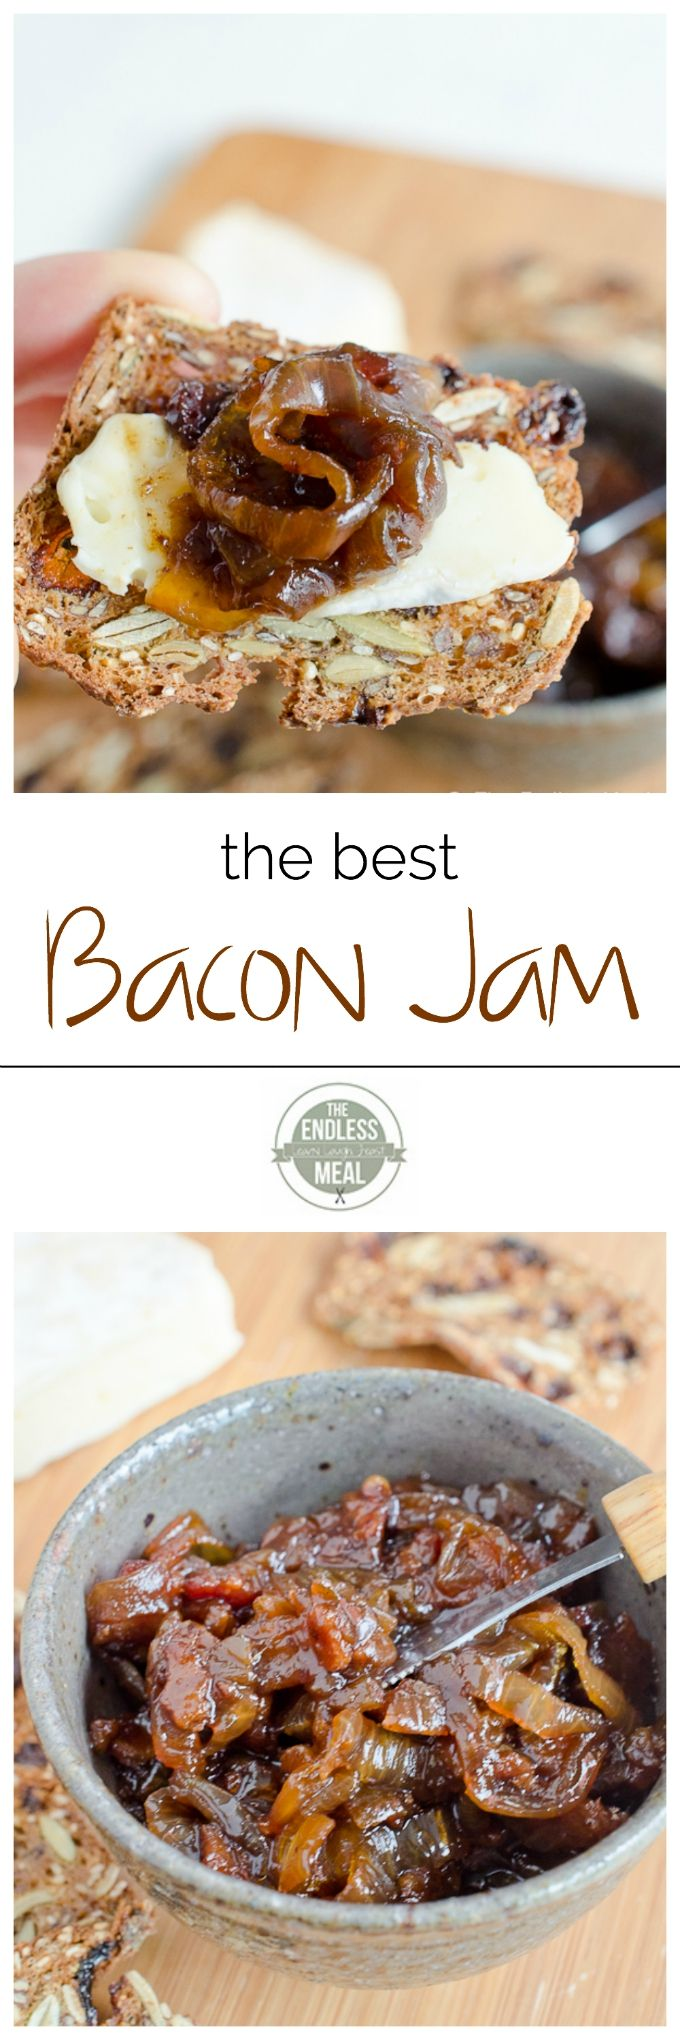 "The Best Bacon Jam Recipe (Okay, not sure how ""healthy"" this is... but I still want to try it!)"